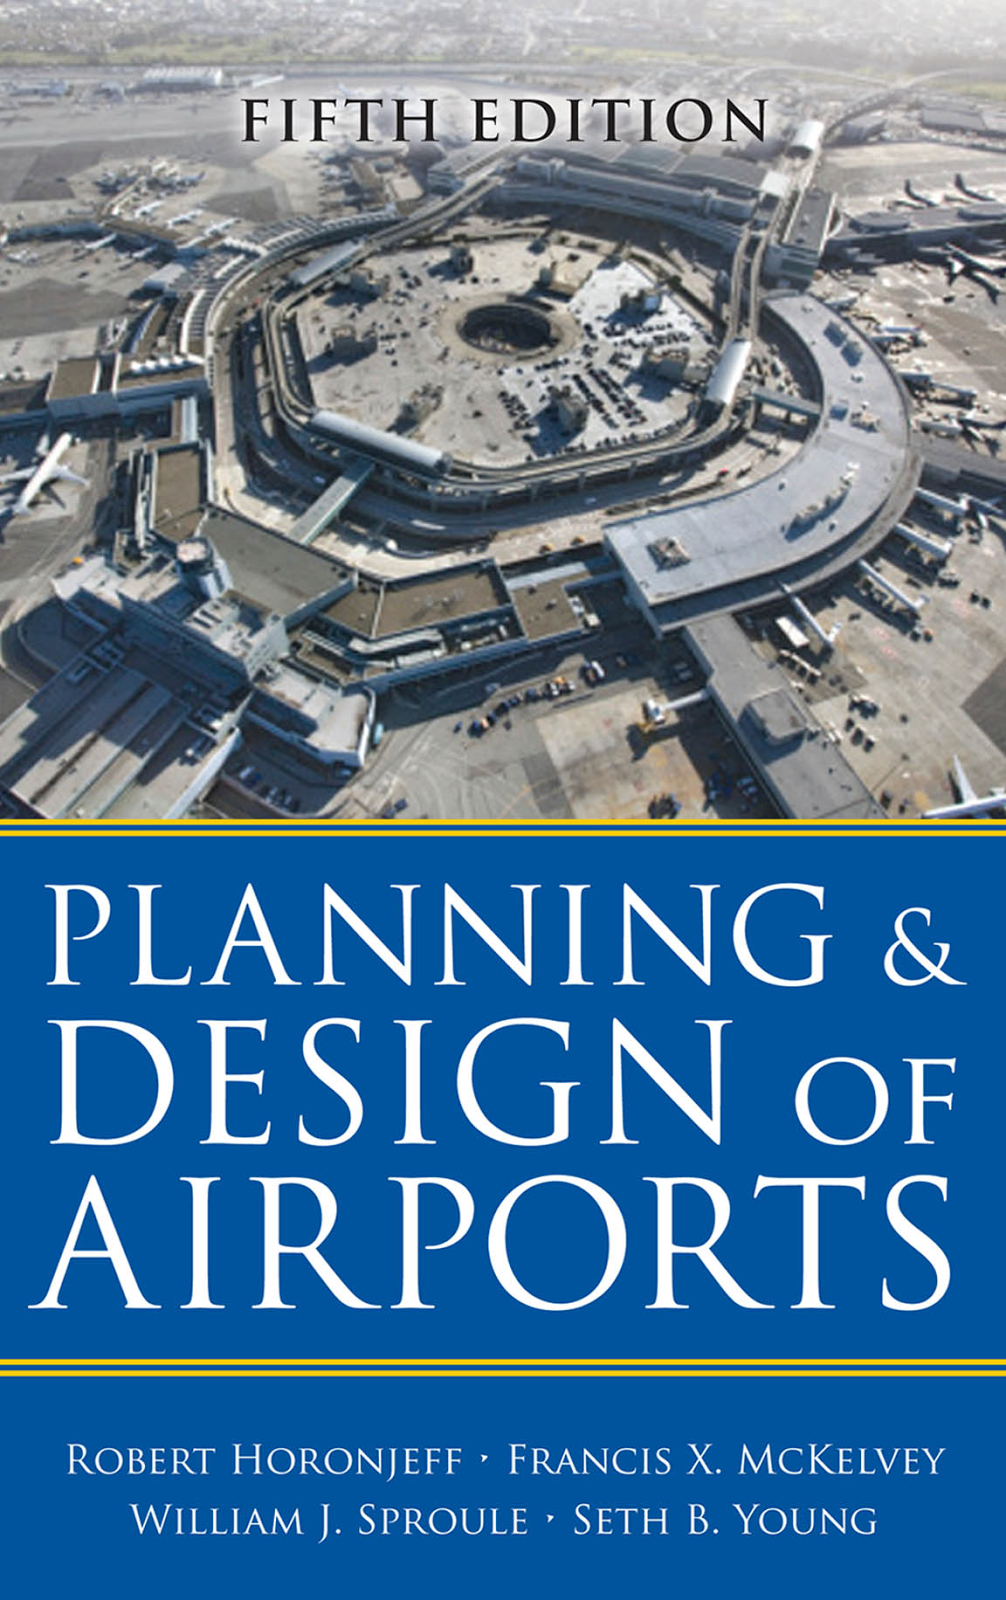 Planning And Design Of Airports 5th Edition By Robert Horonjeff Francis X Mckelvey William J